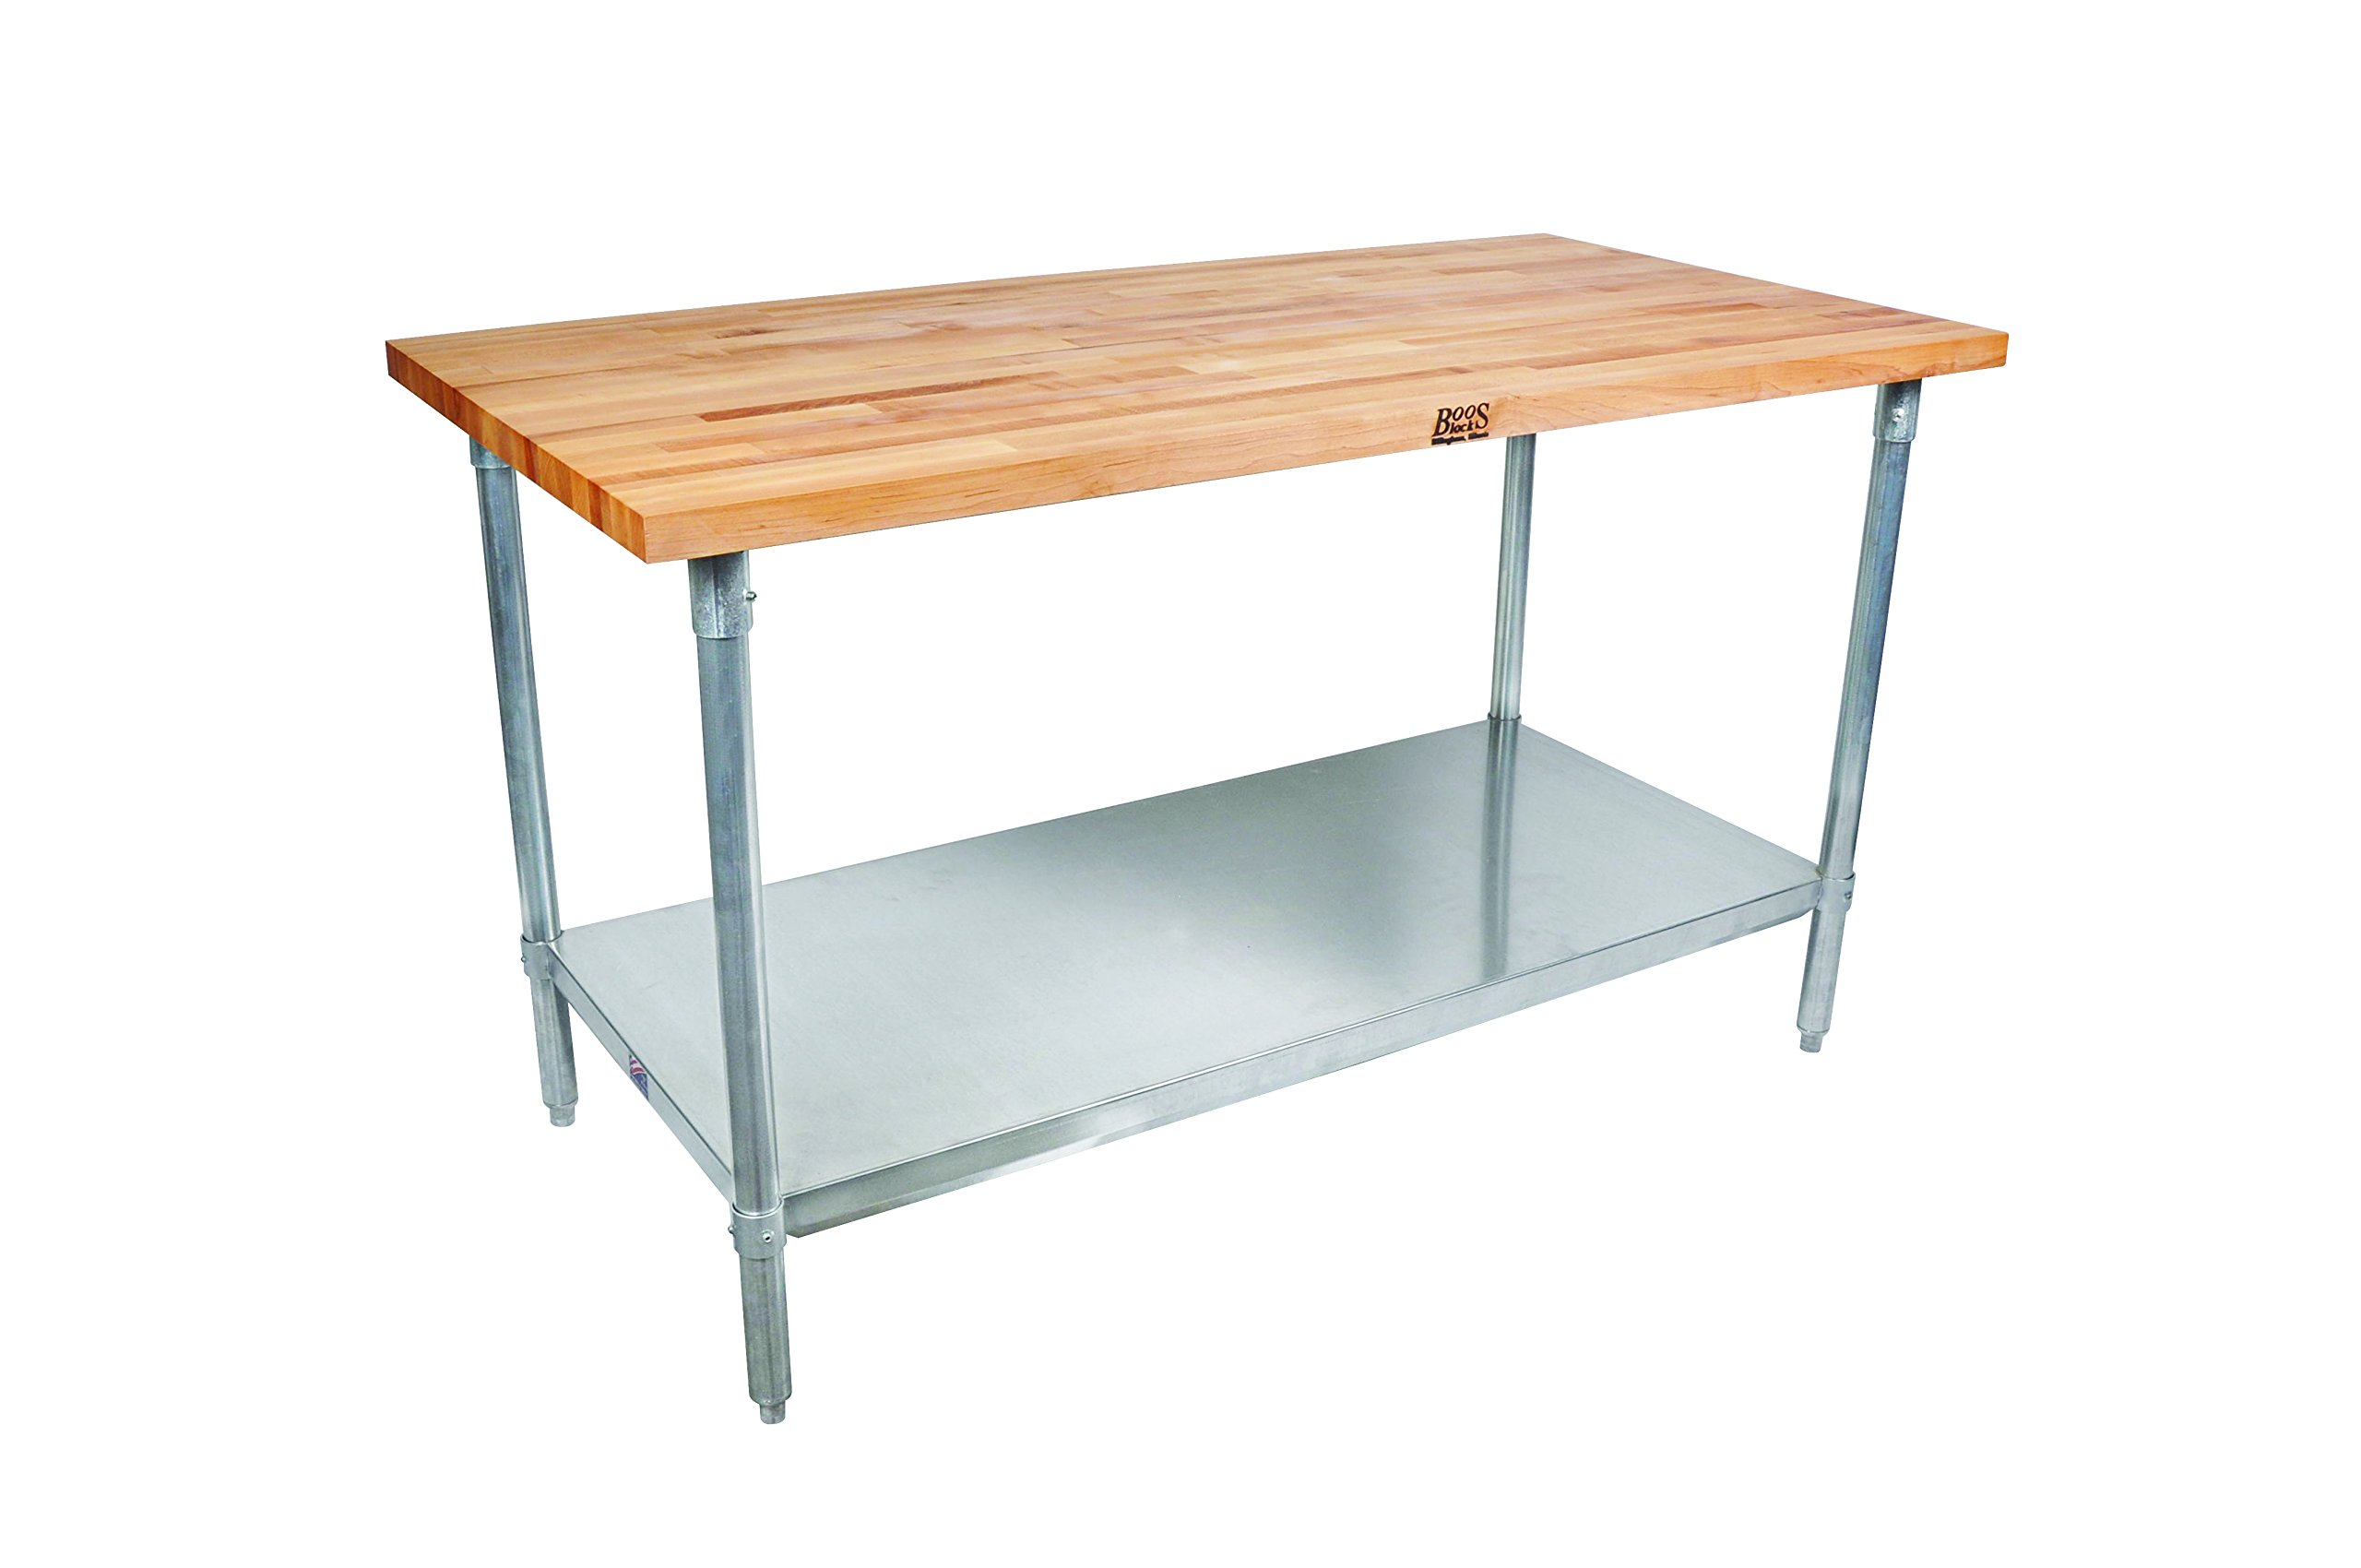 John Boos JNS09 Maple Wood Top Stallion Work Table, Galvanized Legs, Adjustable Lower Shelf, 1-1/2'' Thick, 48'' Length x 30'' Width